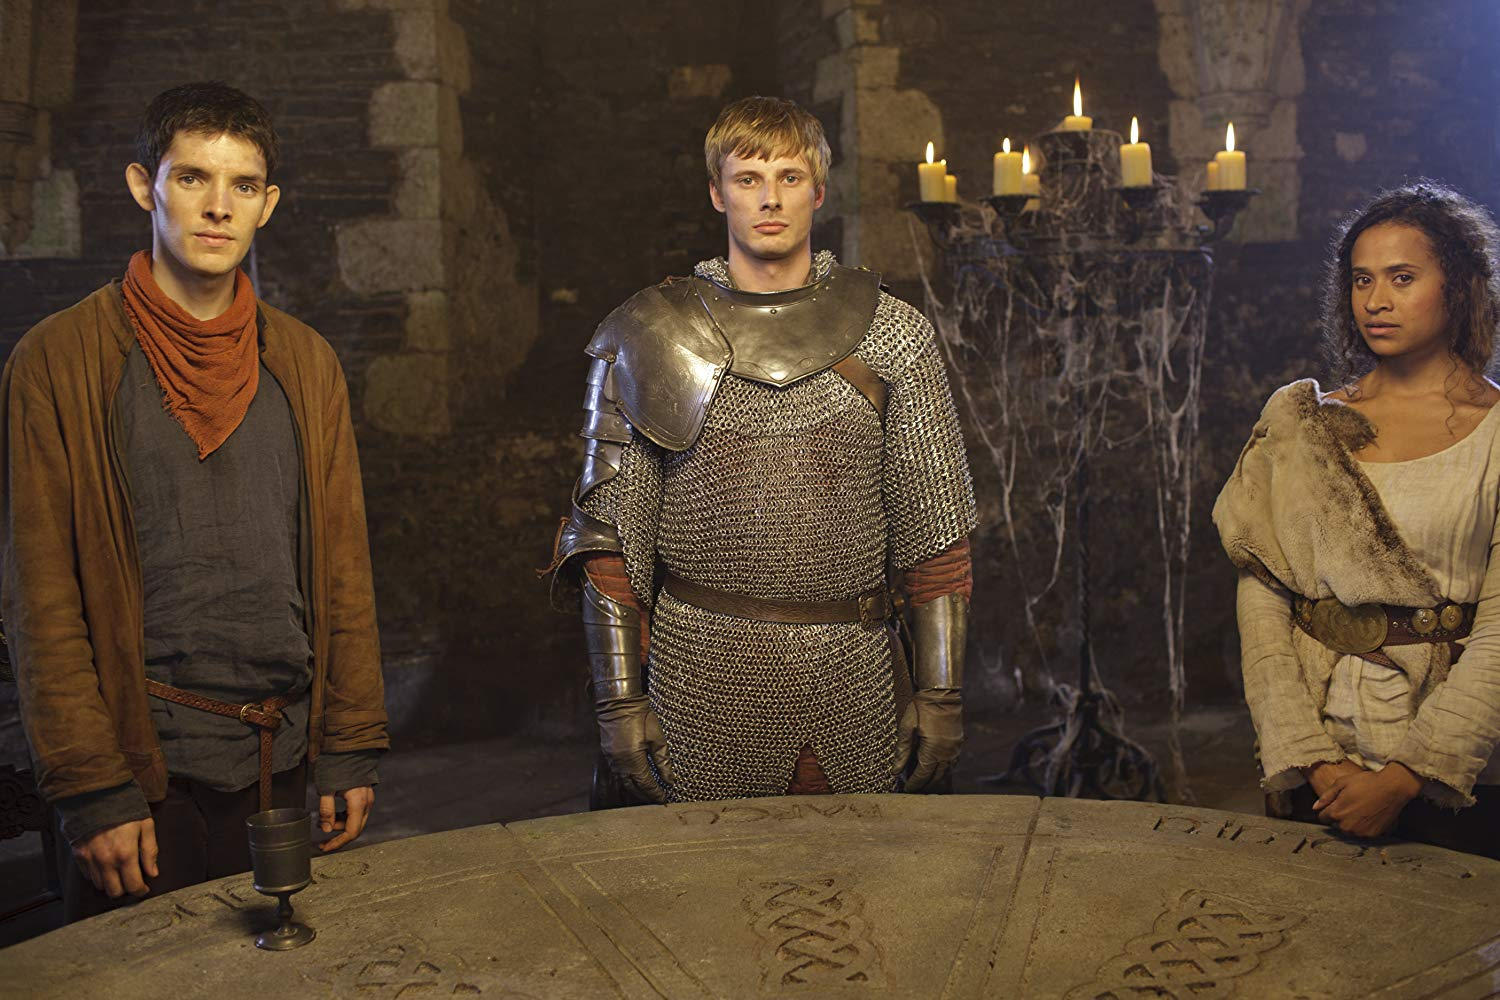 Arthur Pendragon stands at the round table with Merlin and Guinevere